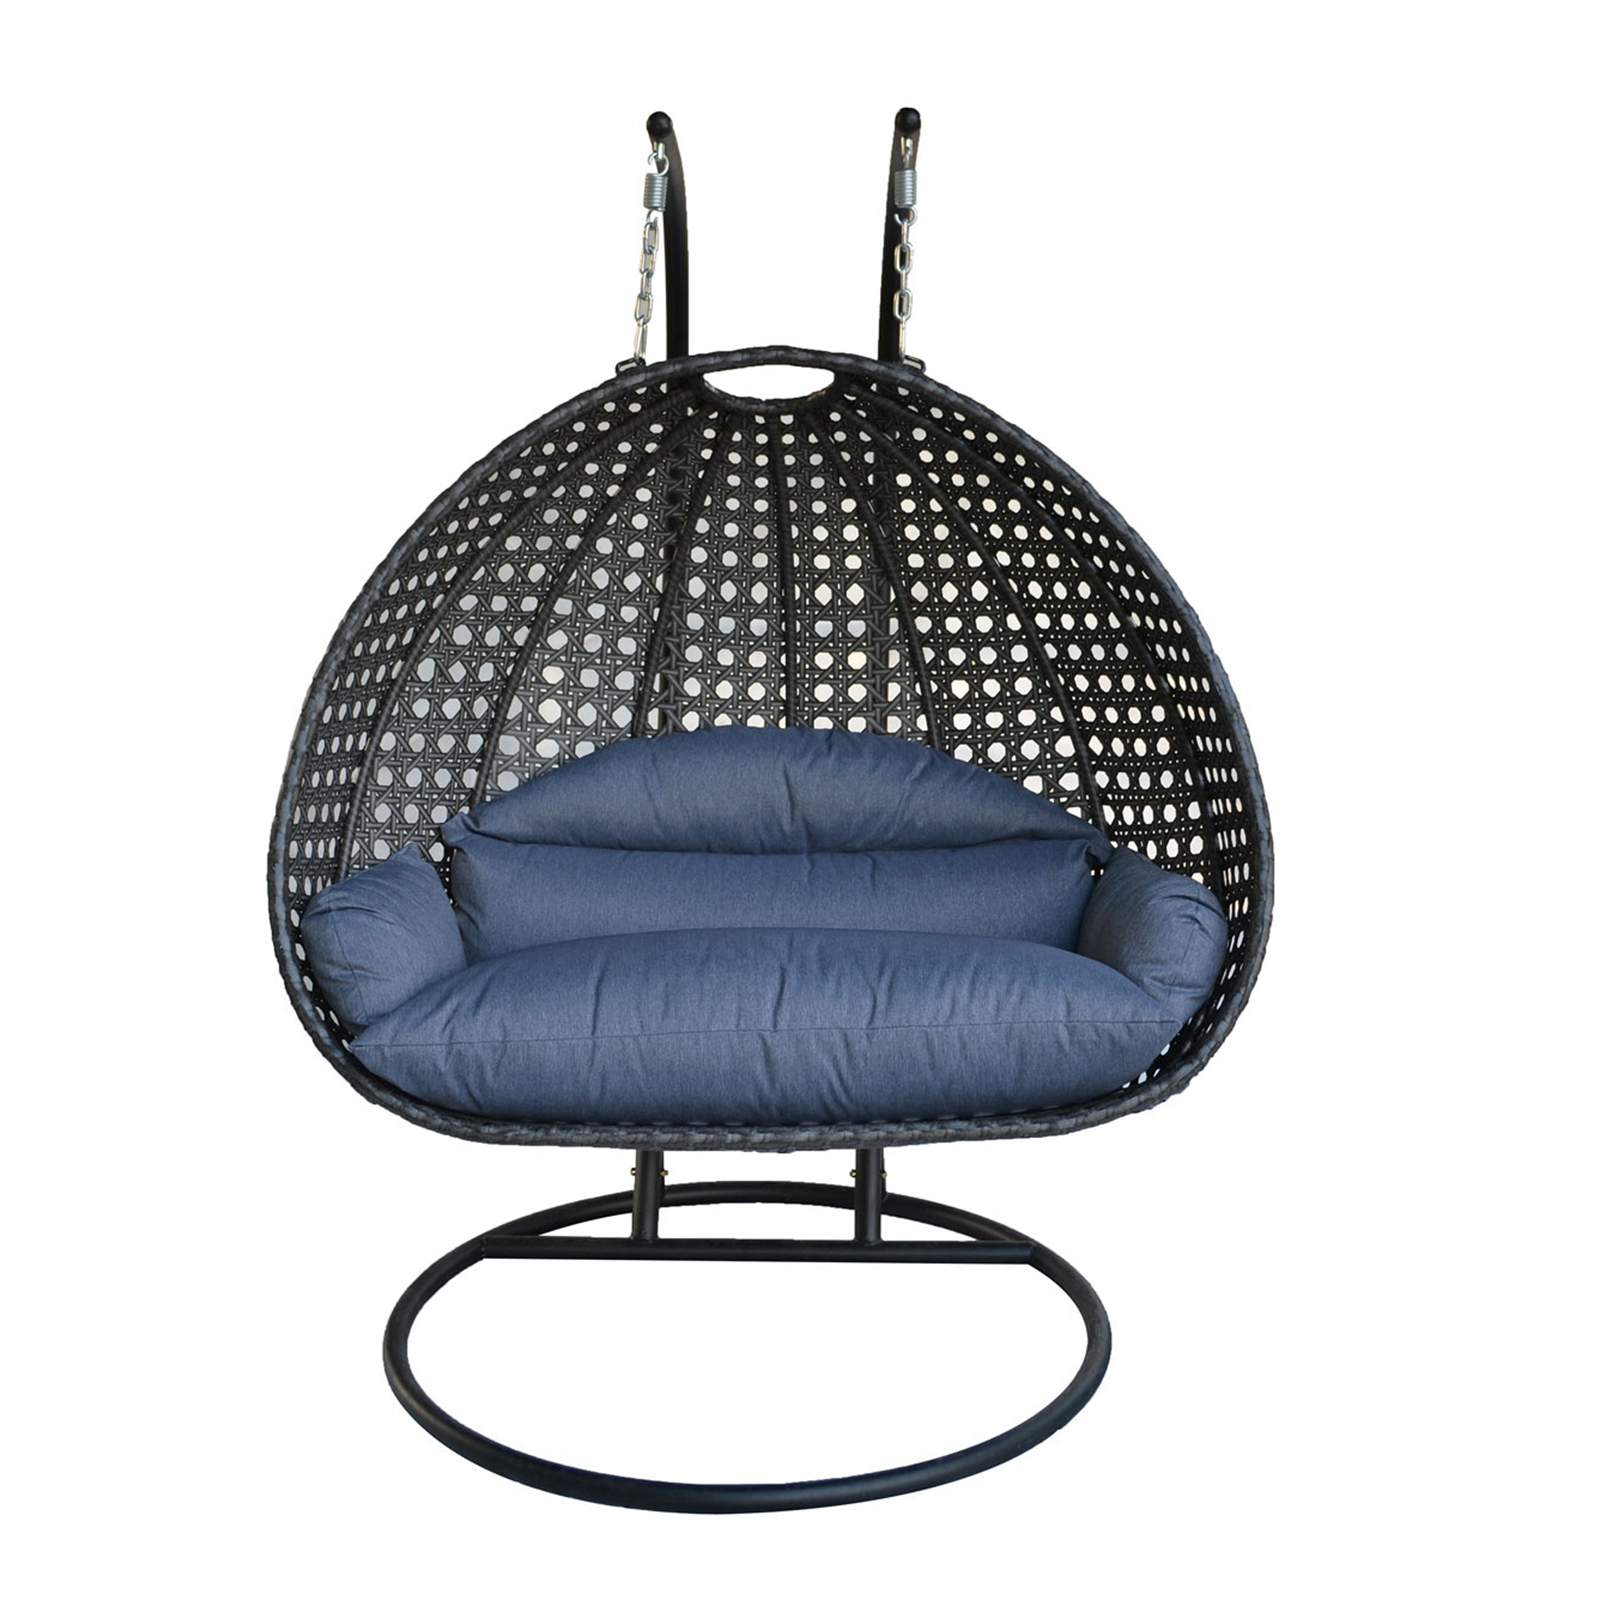 indoor swingasan chair where can i buy bean bag chairs heavy duty 2 person wicker swing hammock rattan